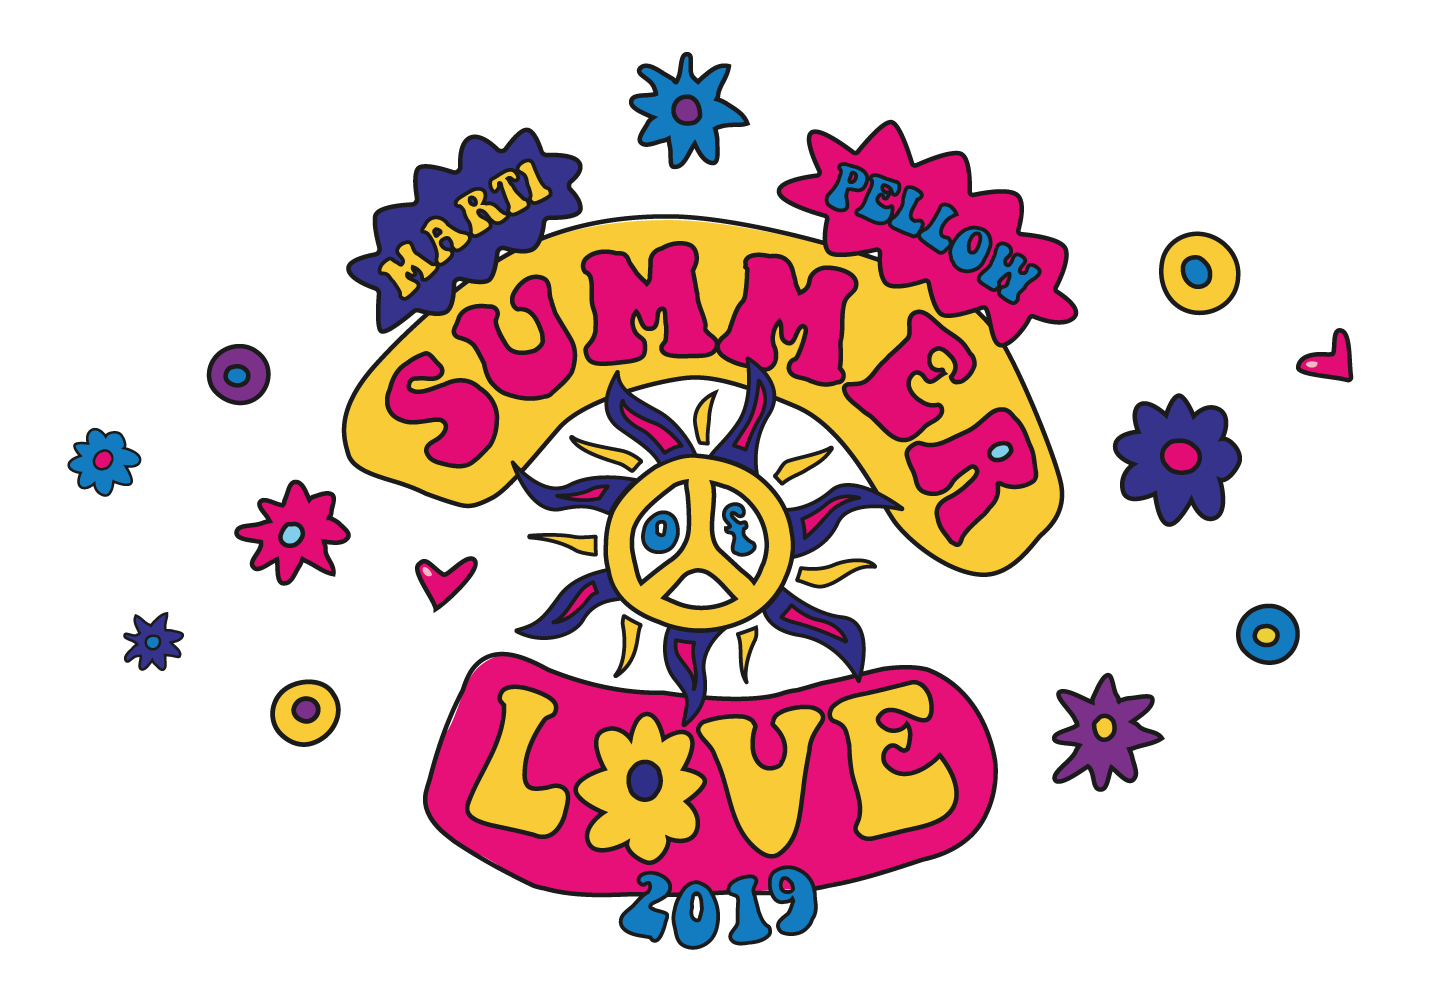 Marti Pellow Summer of Love 2019